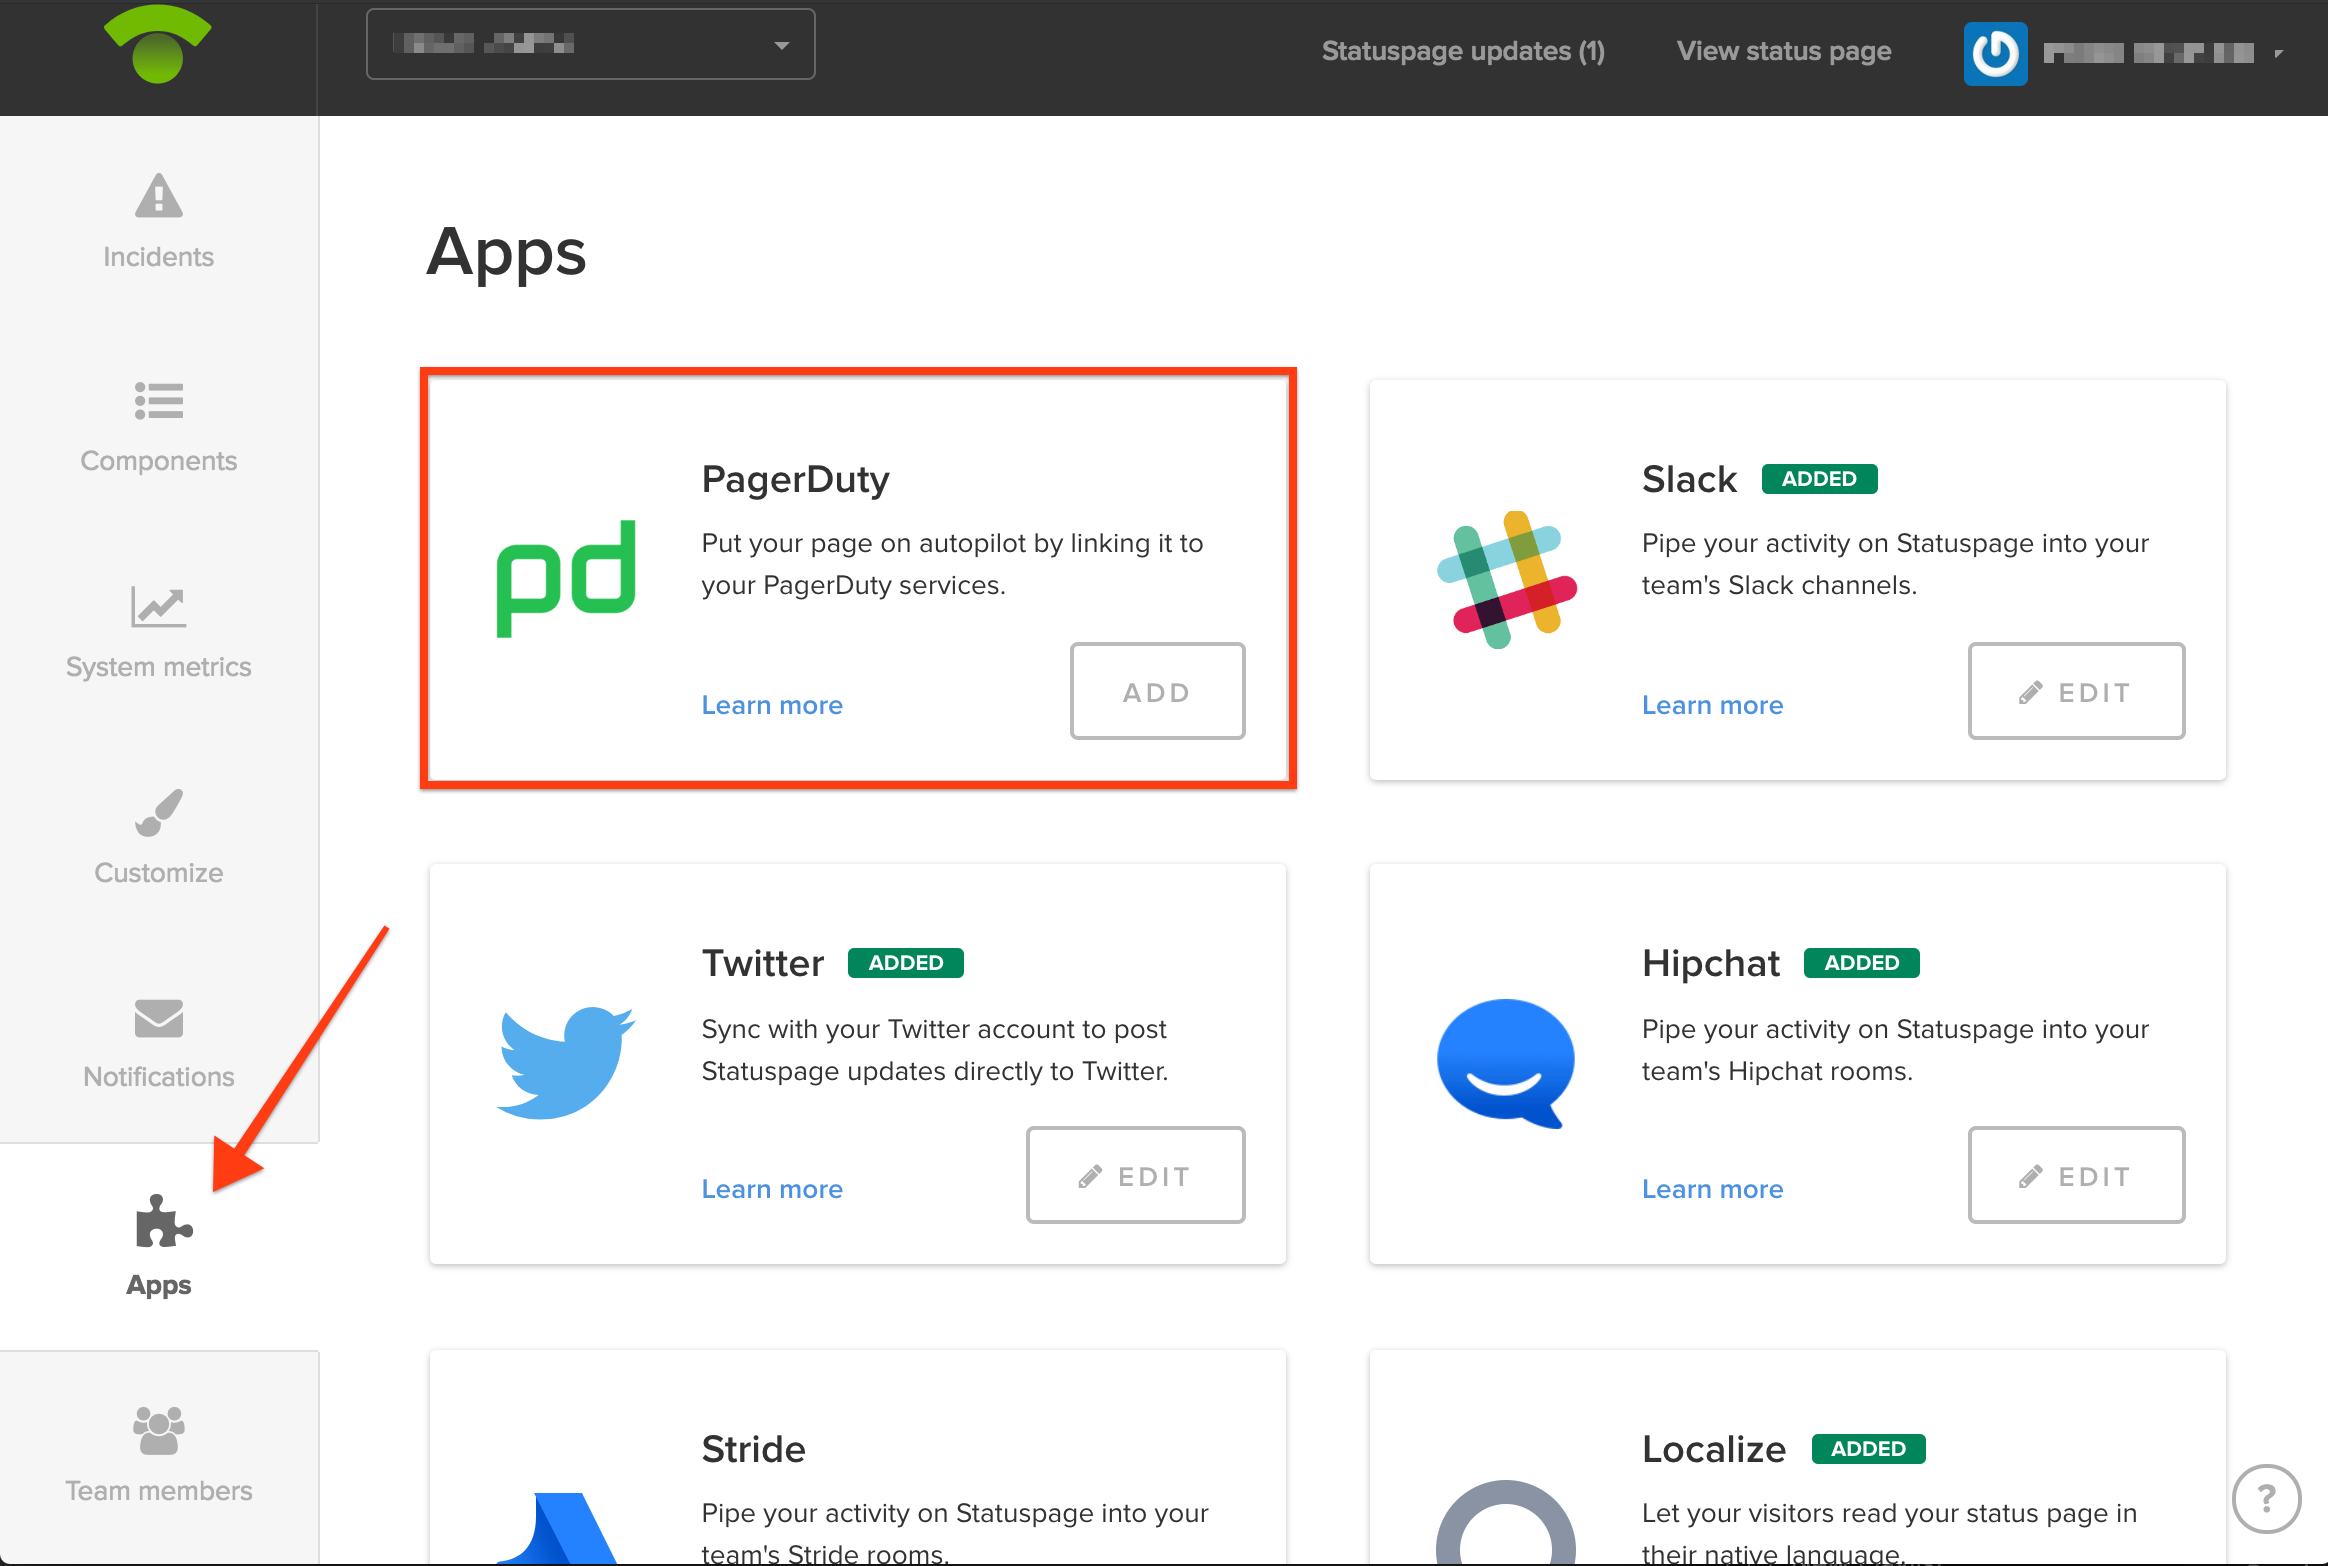 PagerDuty App integration